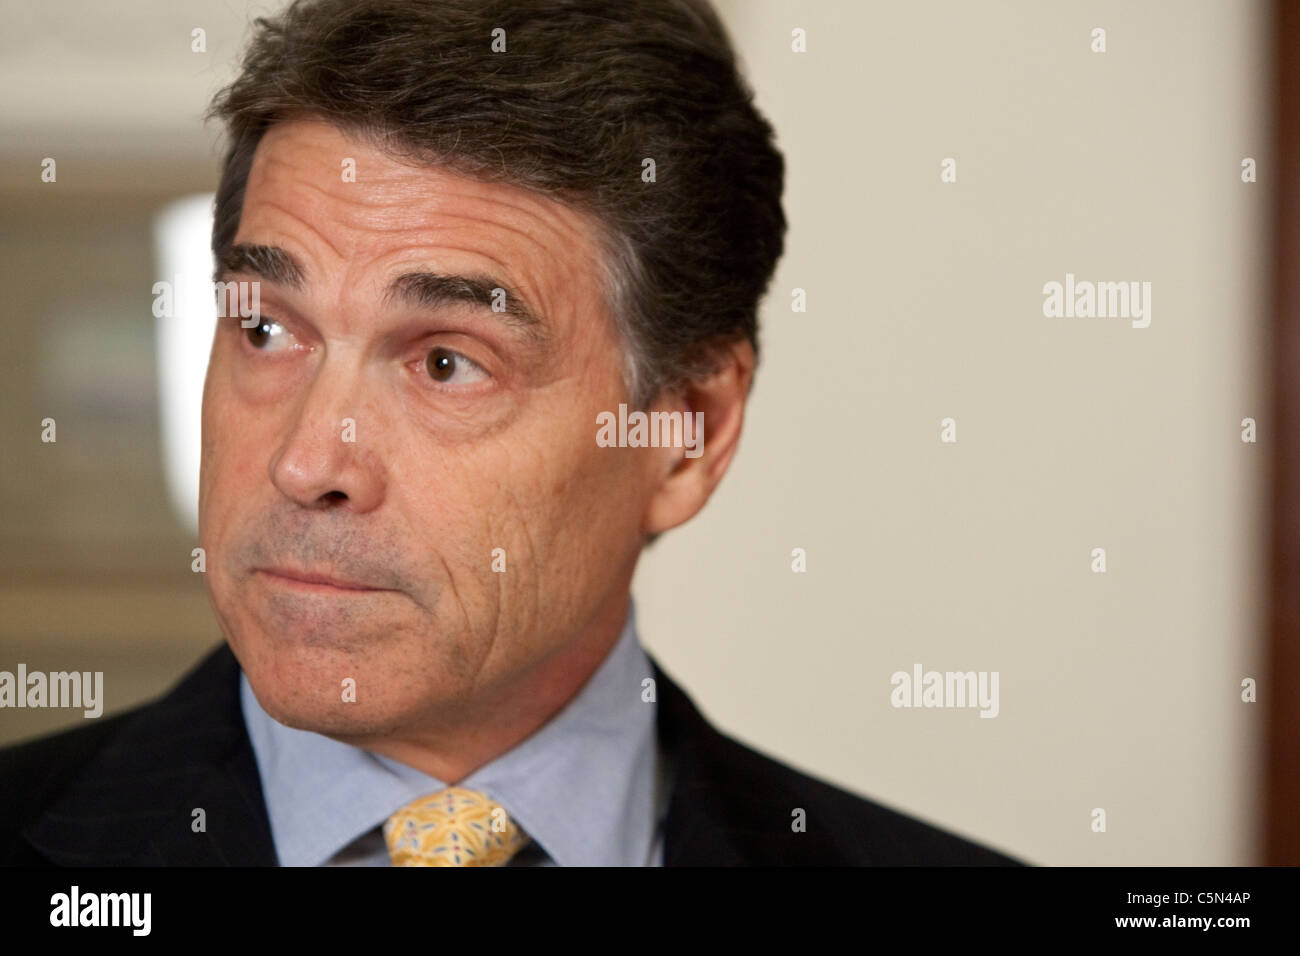 Texas Republican Governor Rick Perry during press conference at Texas Capitol in July, 2011 - Stock Image